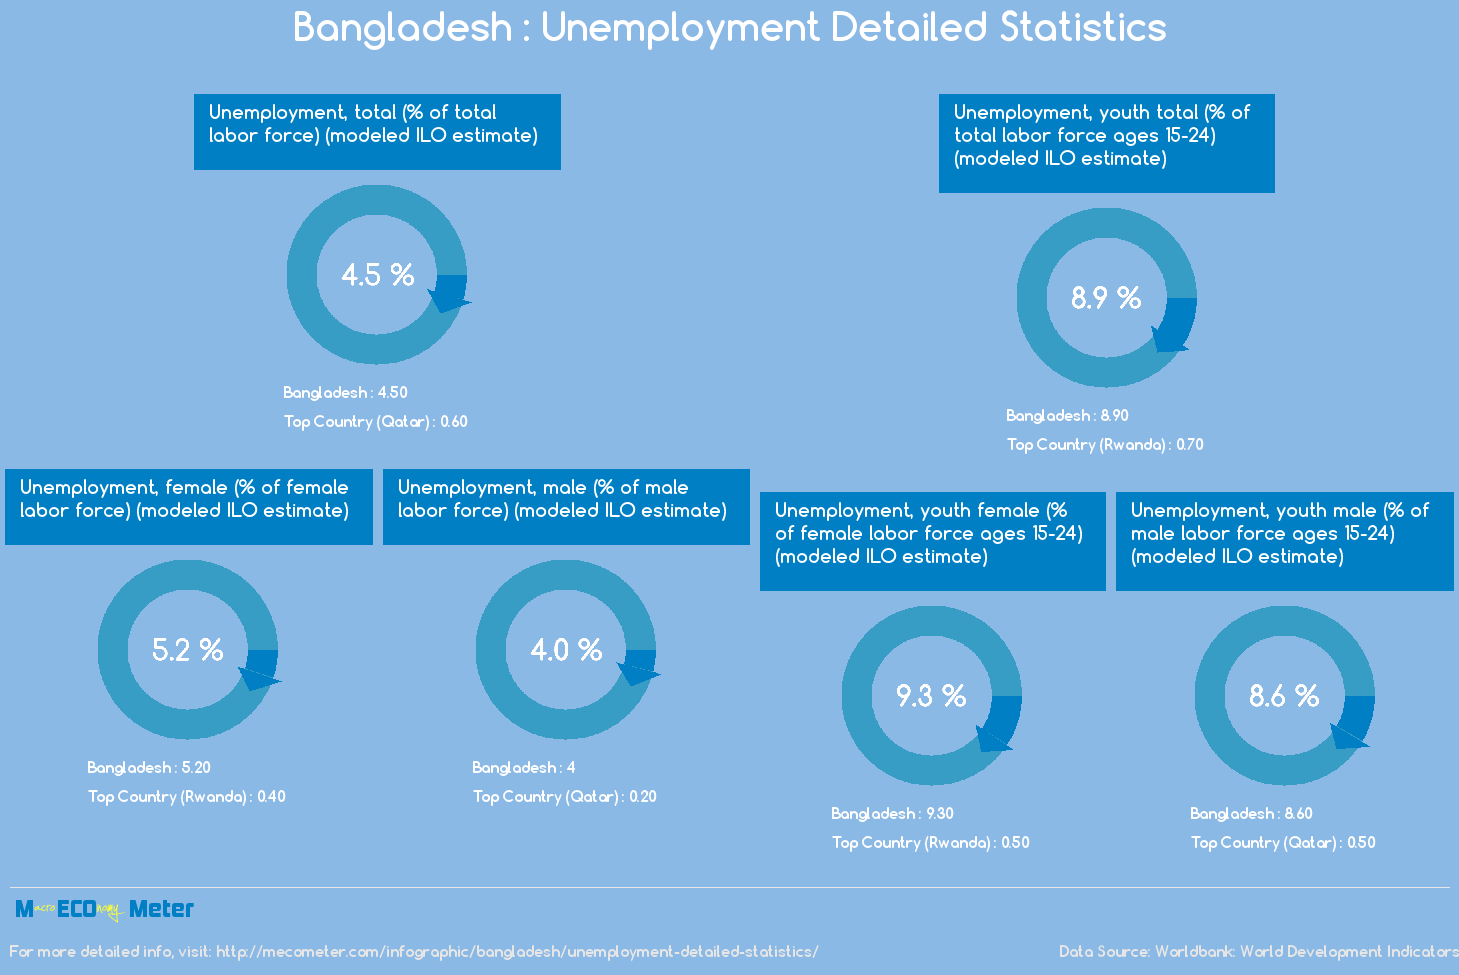 Bangladesh : Unemployment Detailed Statistics